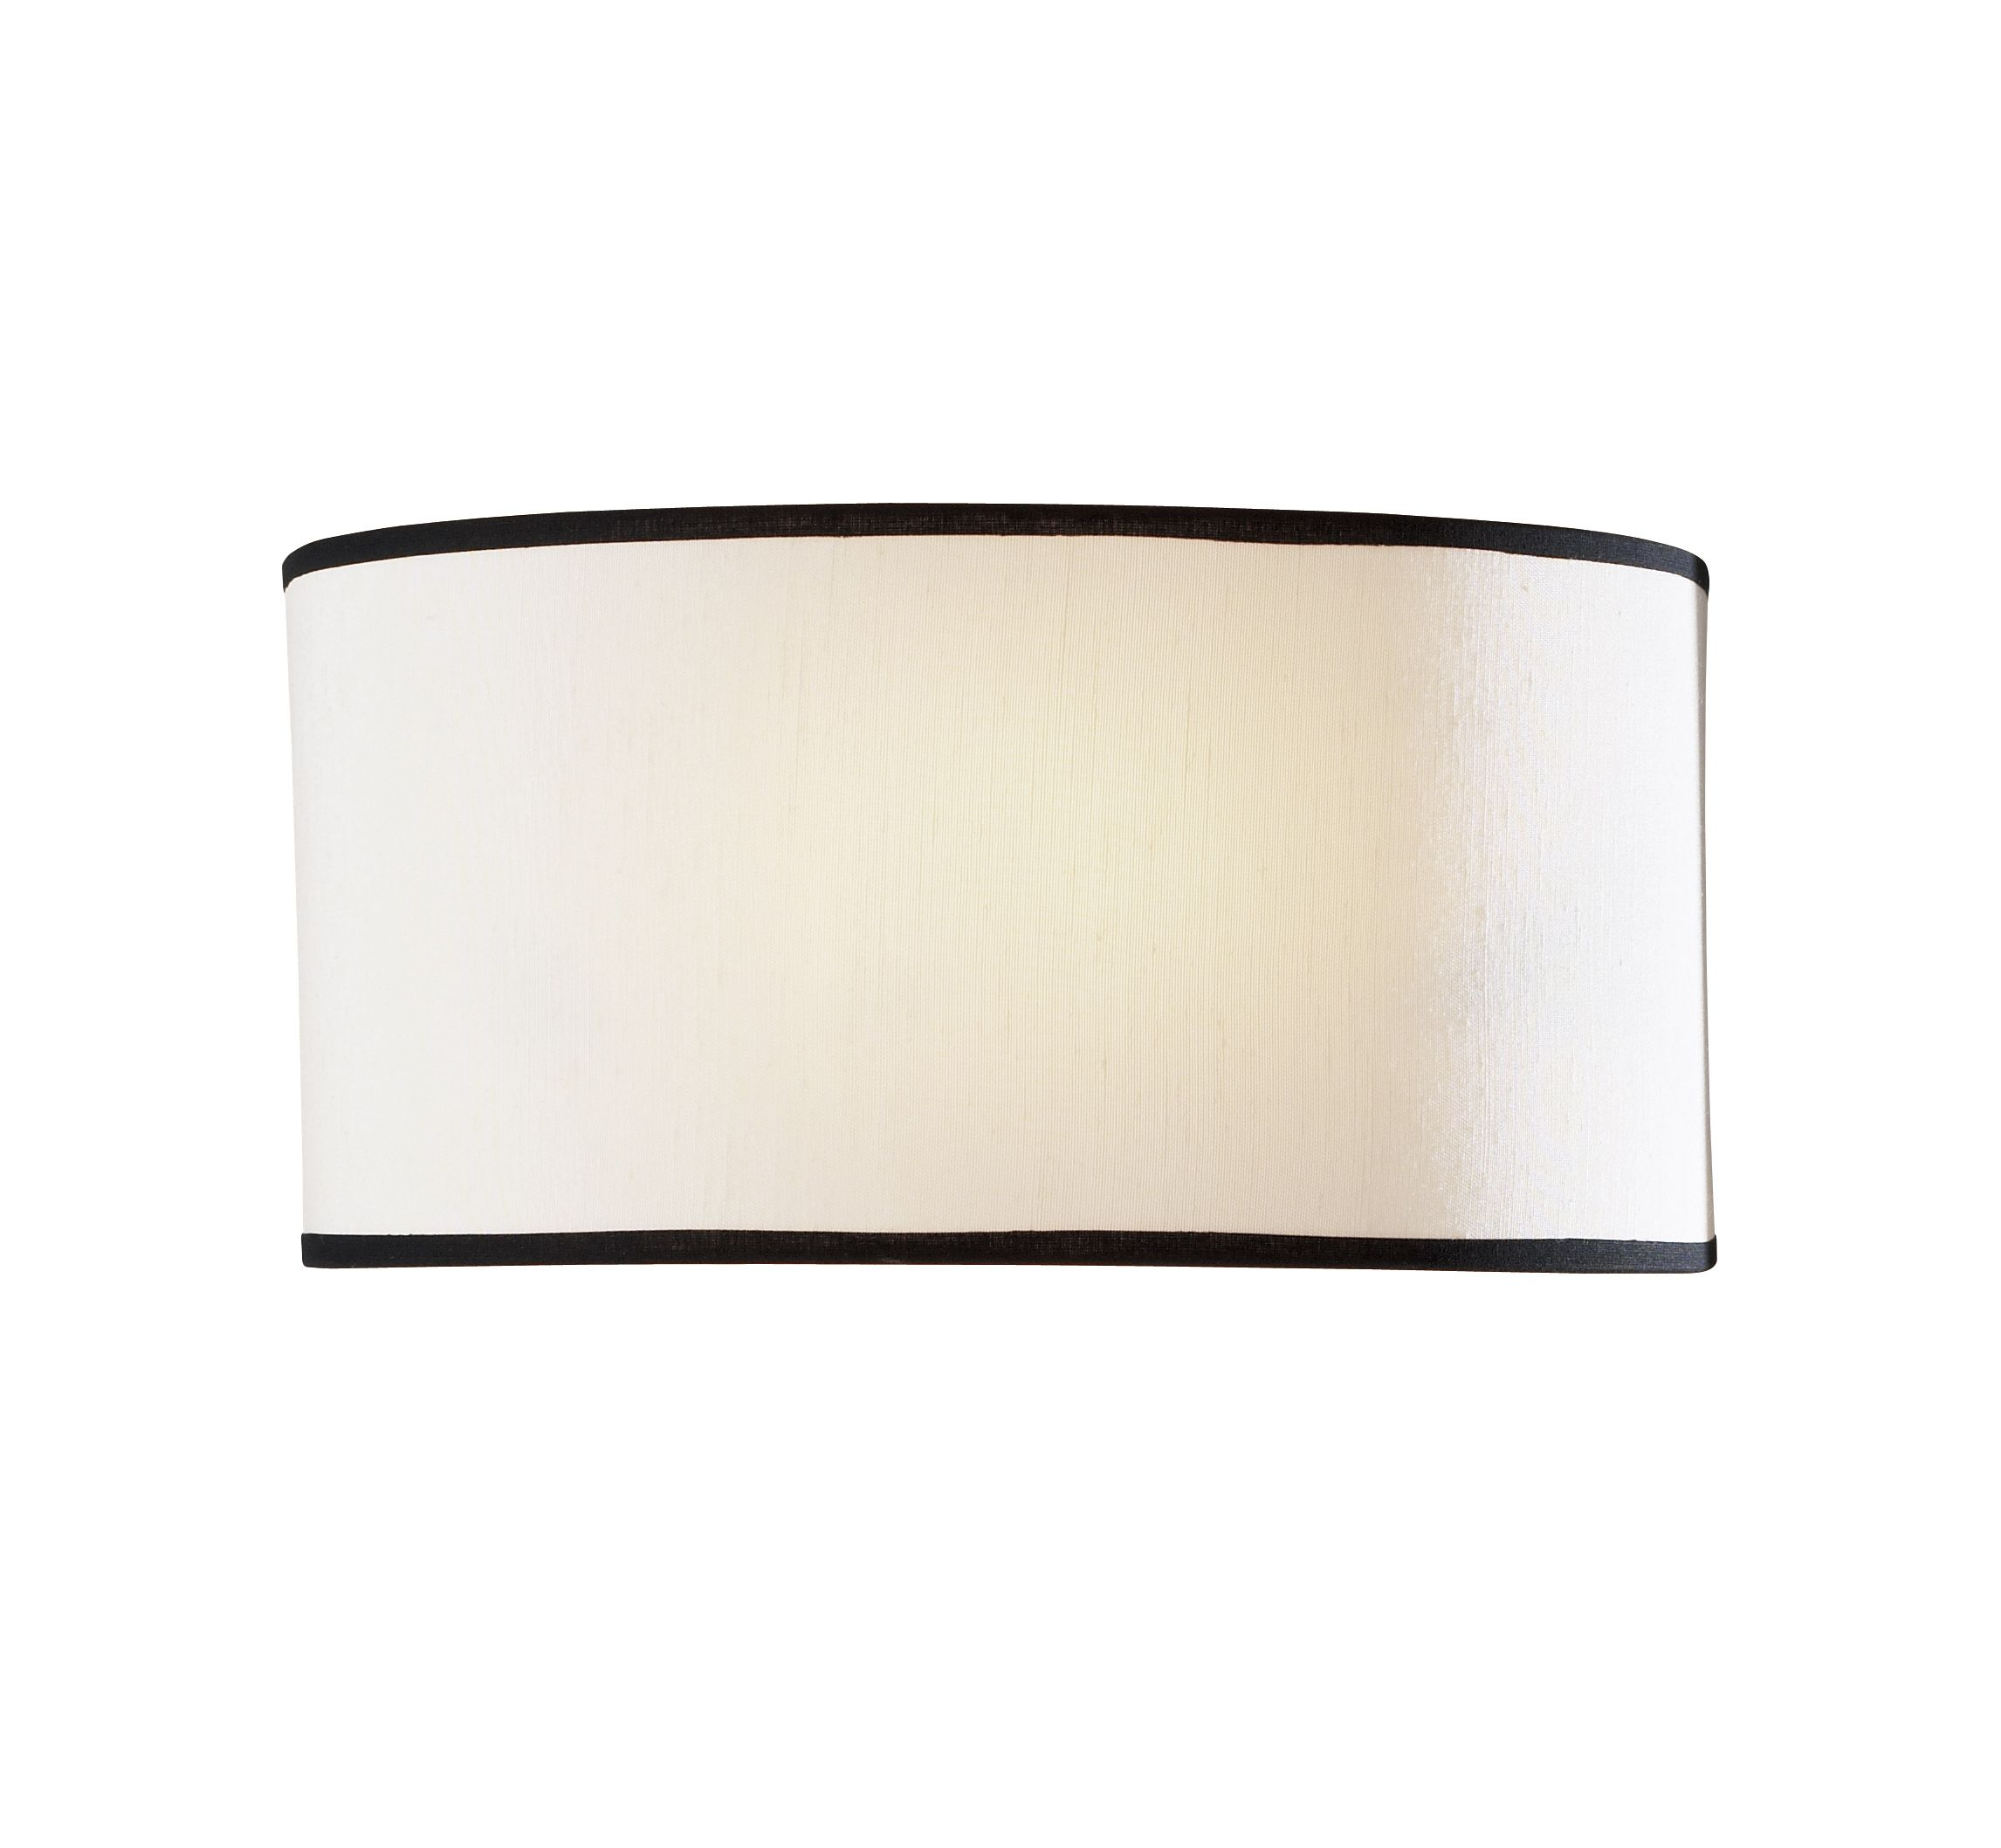 Double Insulated Class 2 Wall Lights : Ascott 1-light Cream shade Finish Wall Light ASC0733 025178 Class 2 Double Insulated